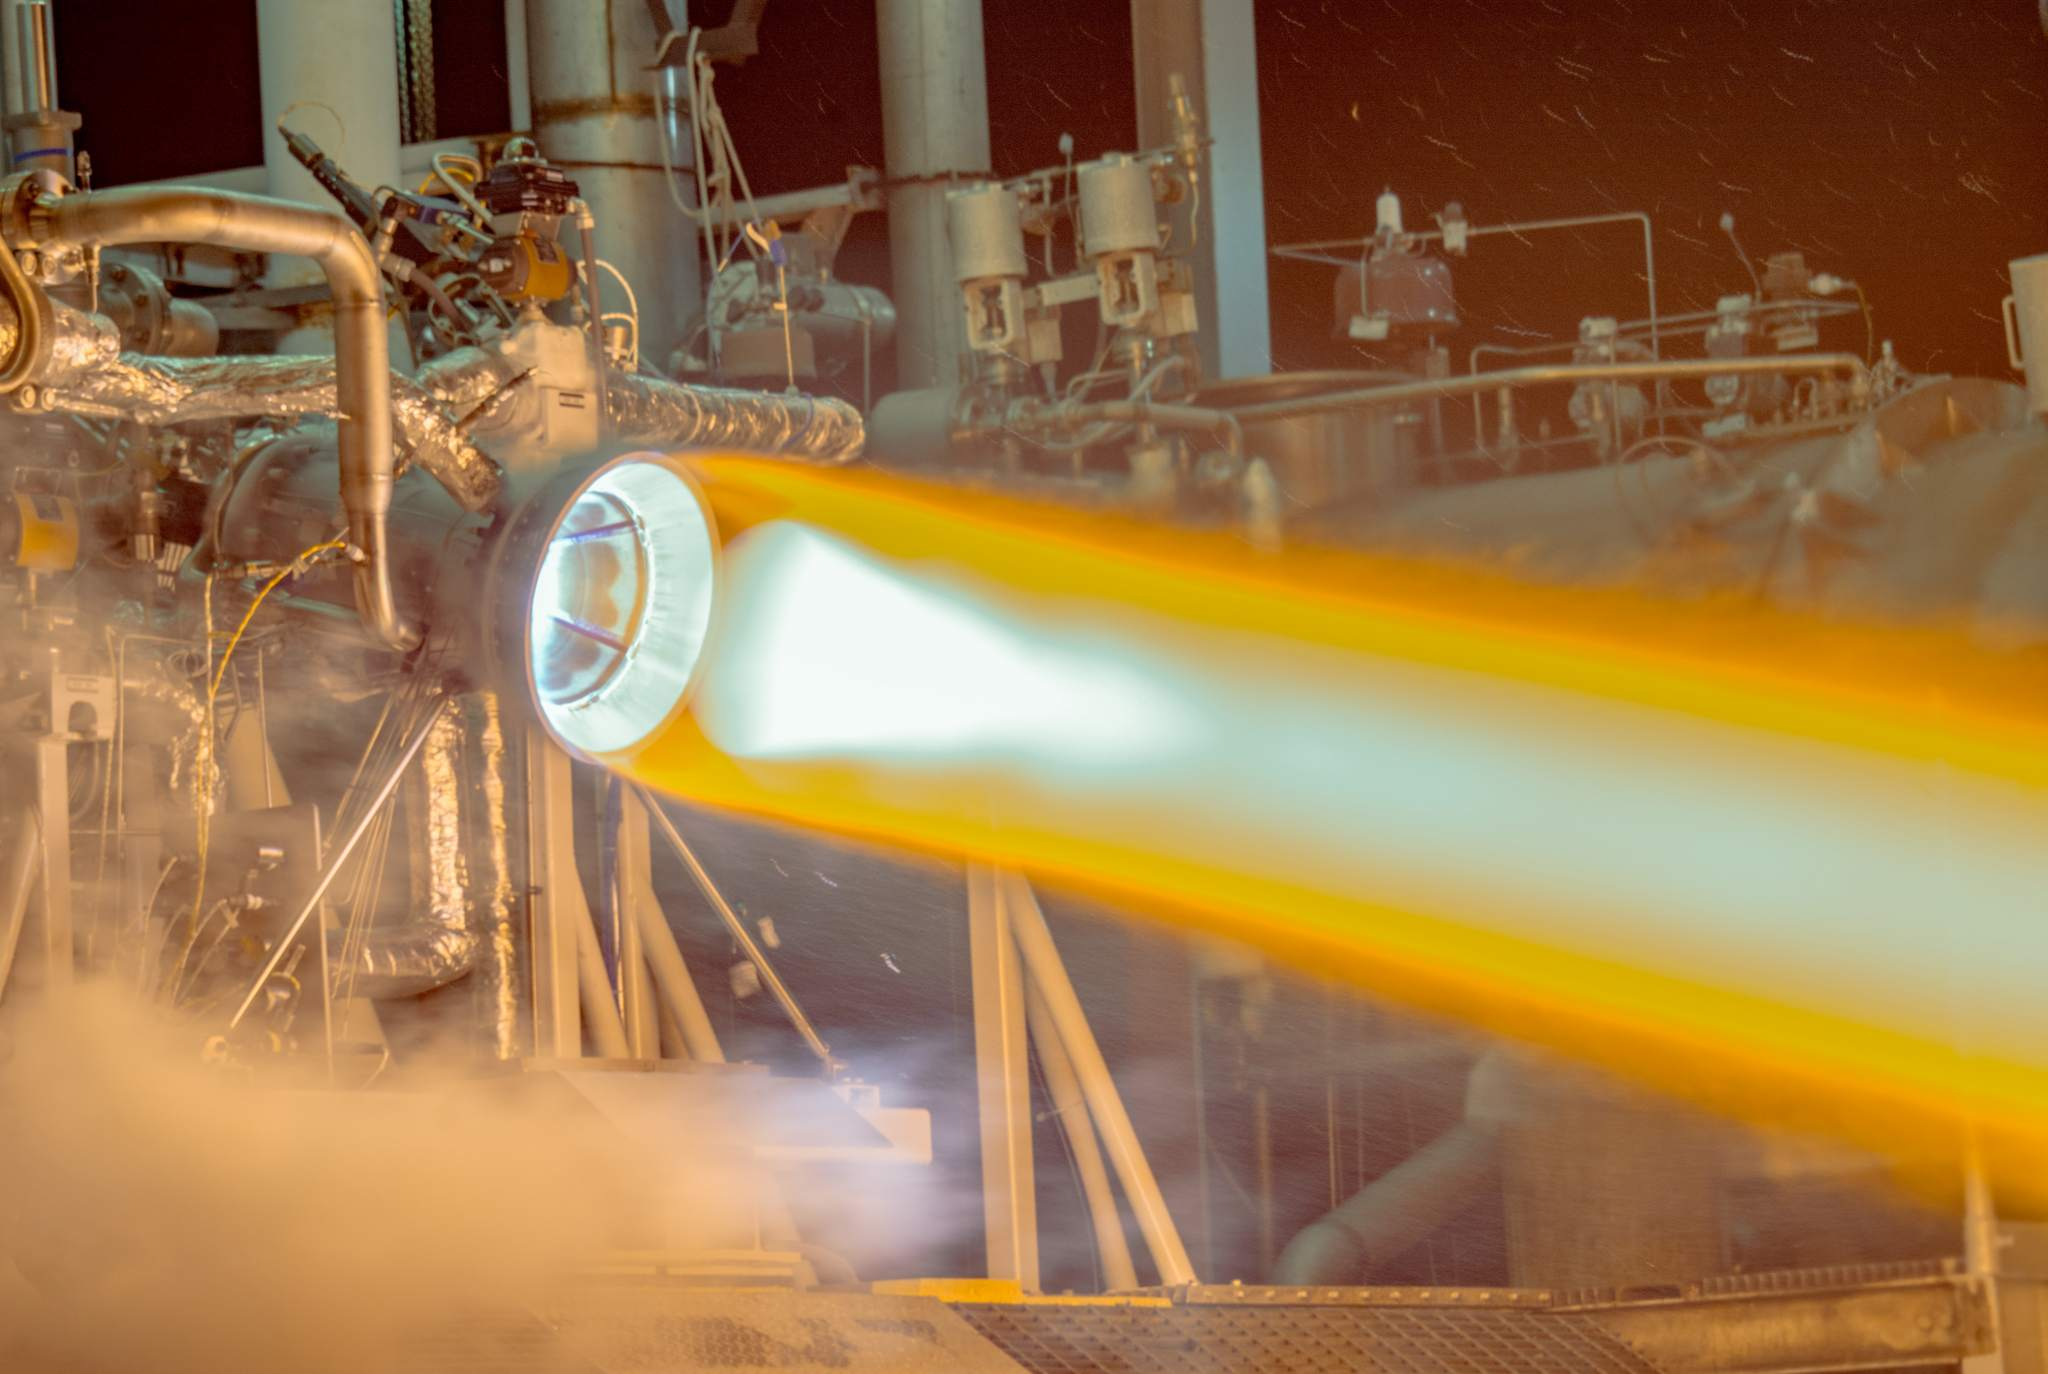 The RL10 rocket engine tested with 3D printed copper thrust chamber. Image via Aerojet Rocketdyne.